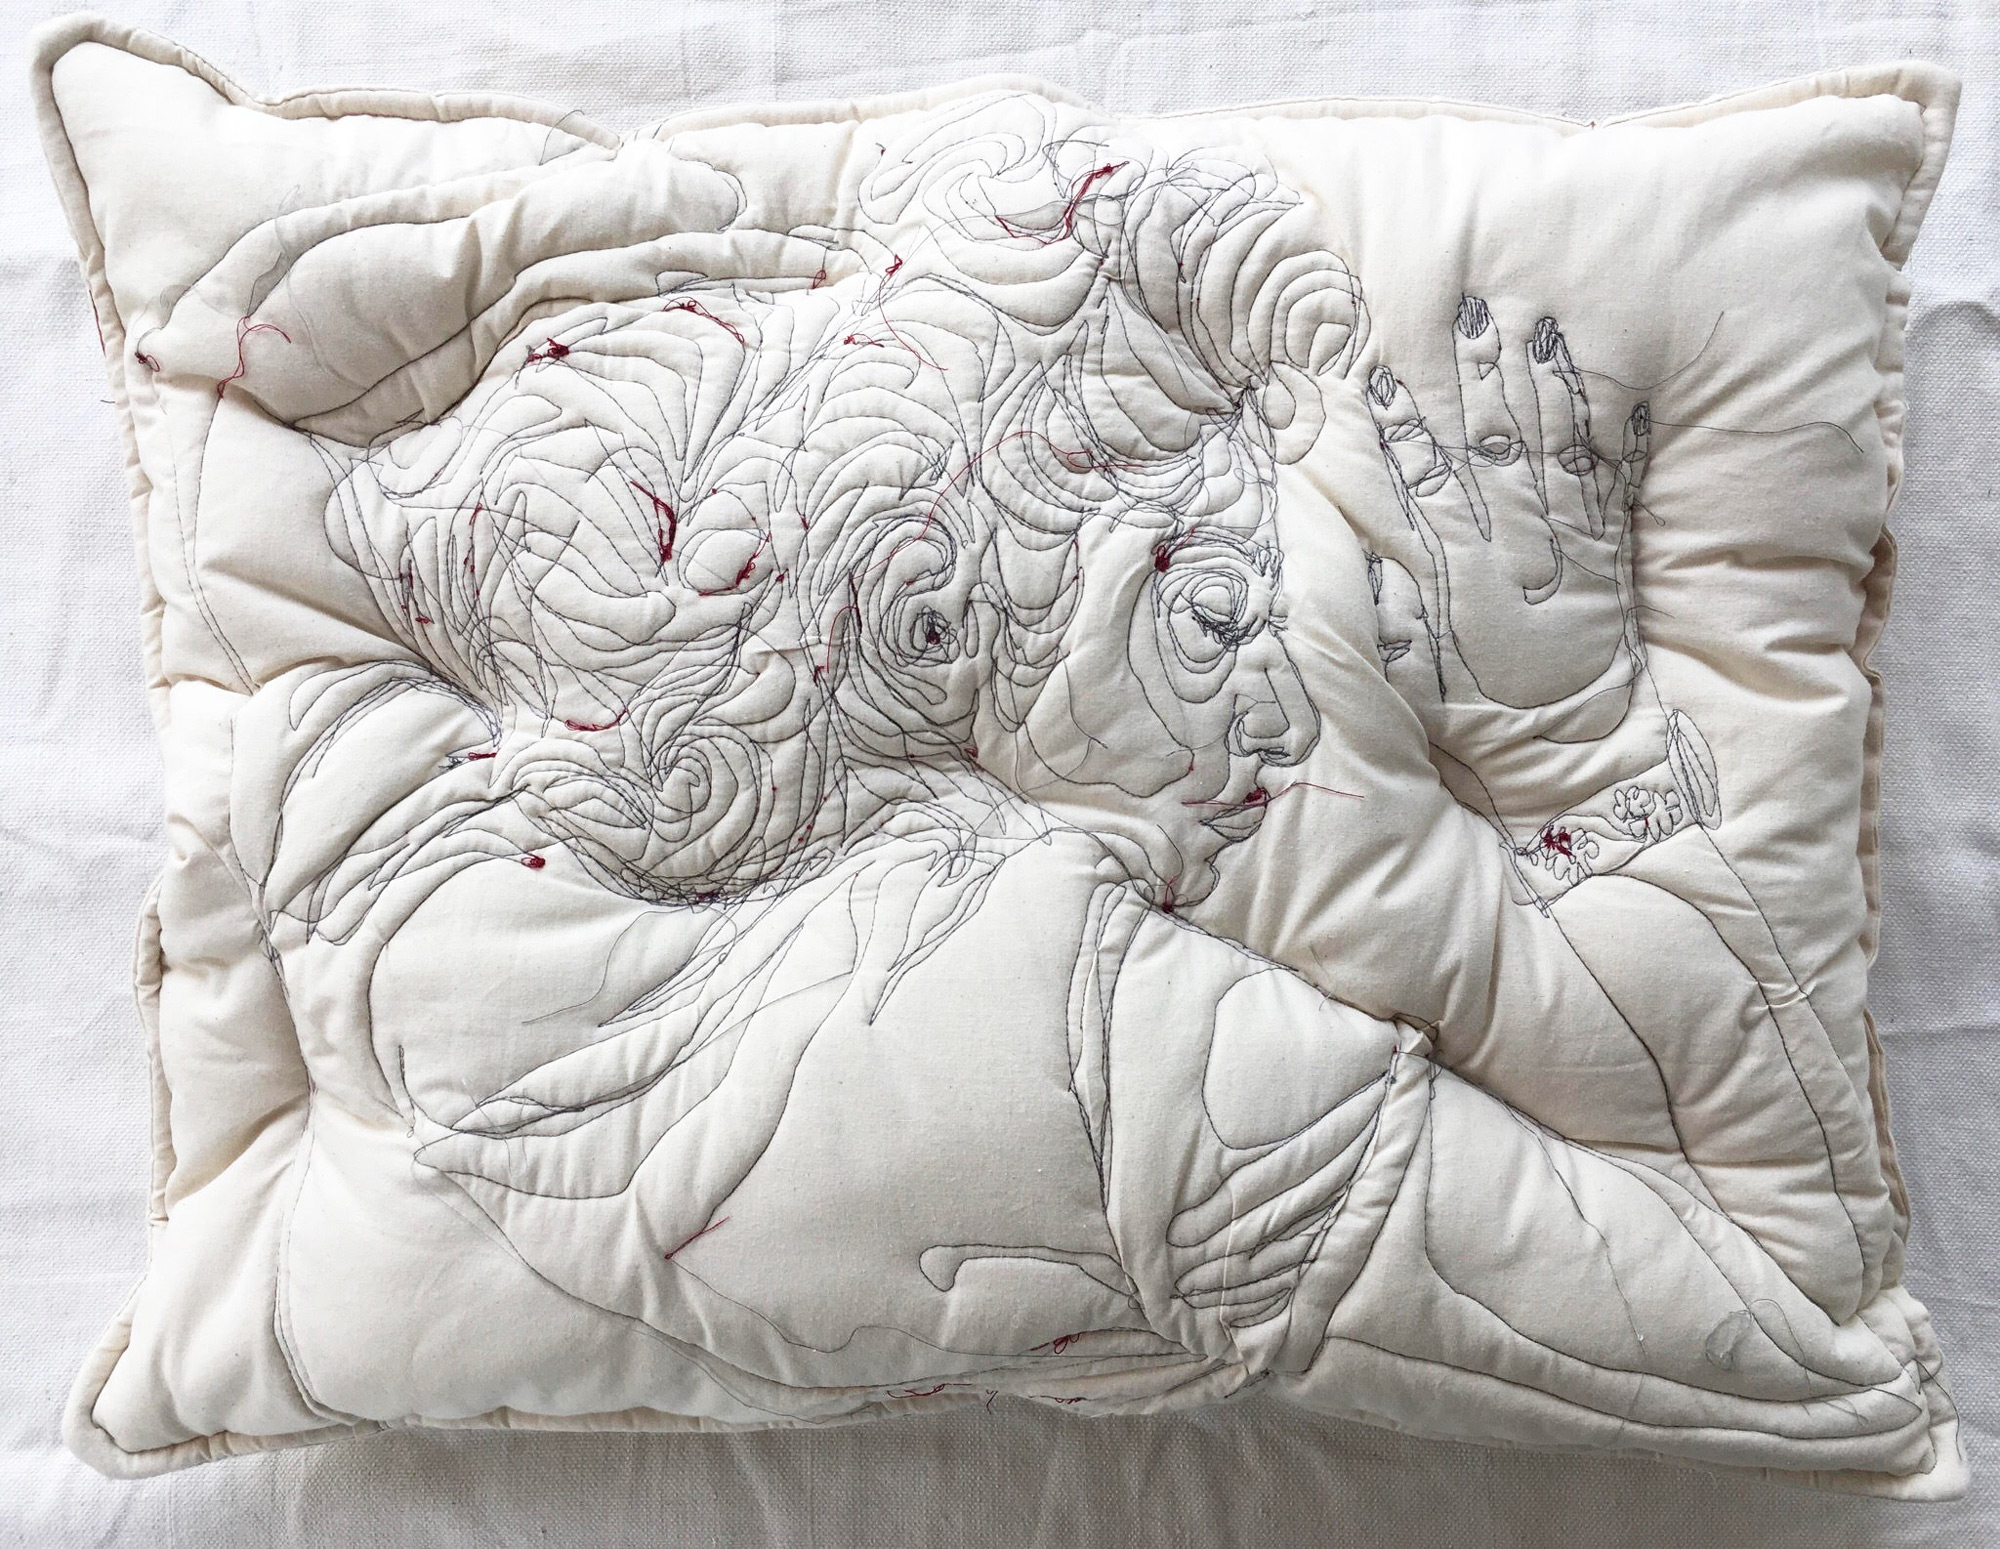 New Embroideries of People Slumbering on Handmade Pillows